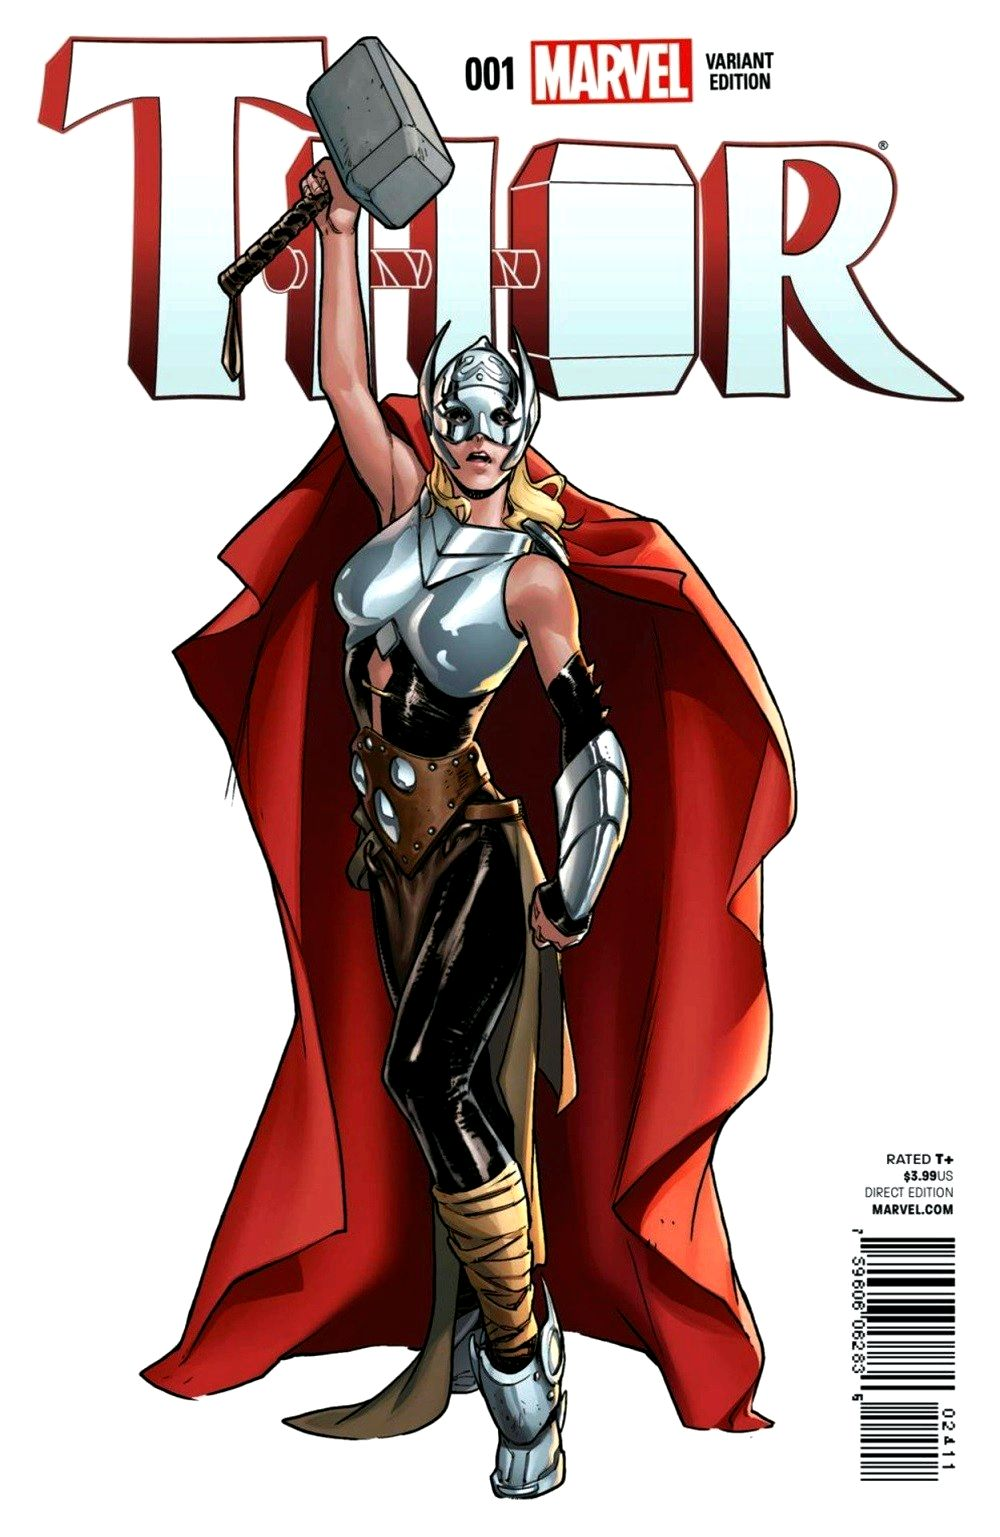 Marvel comics' thor makes home in condition included in new series area apart from New You